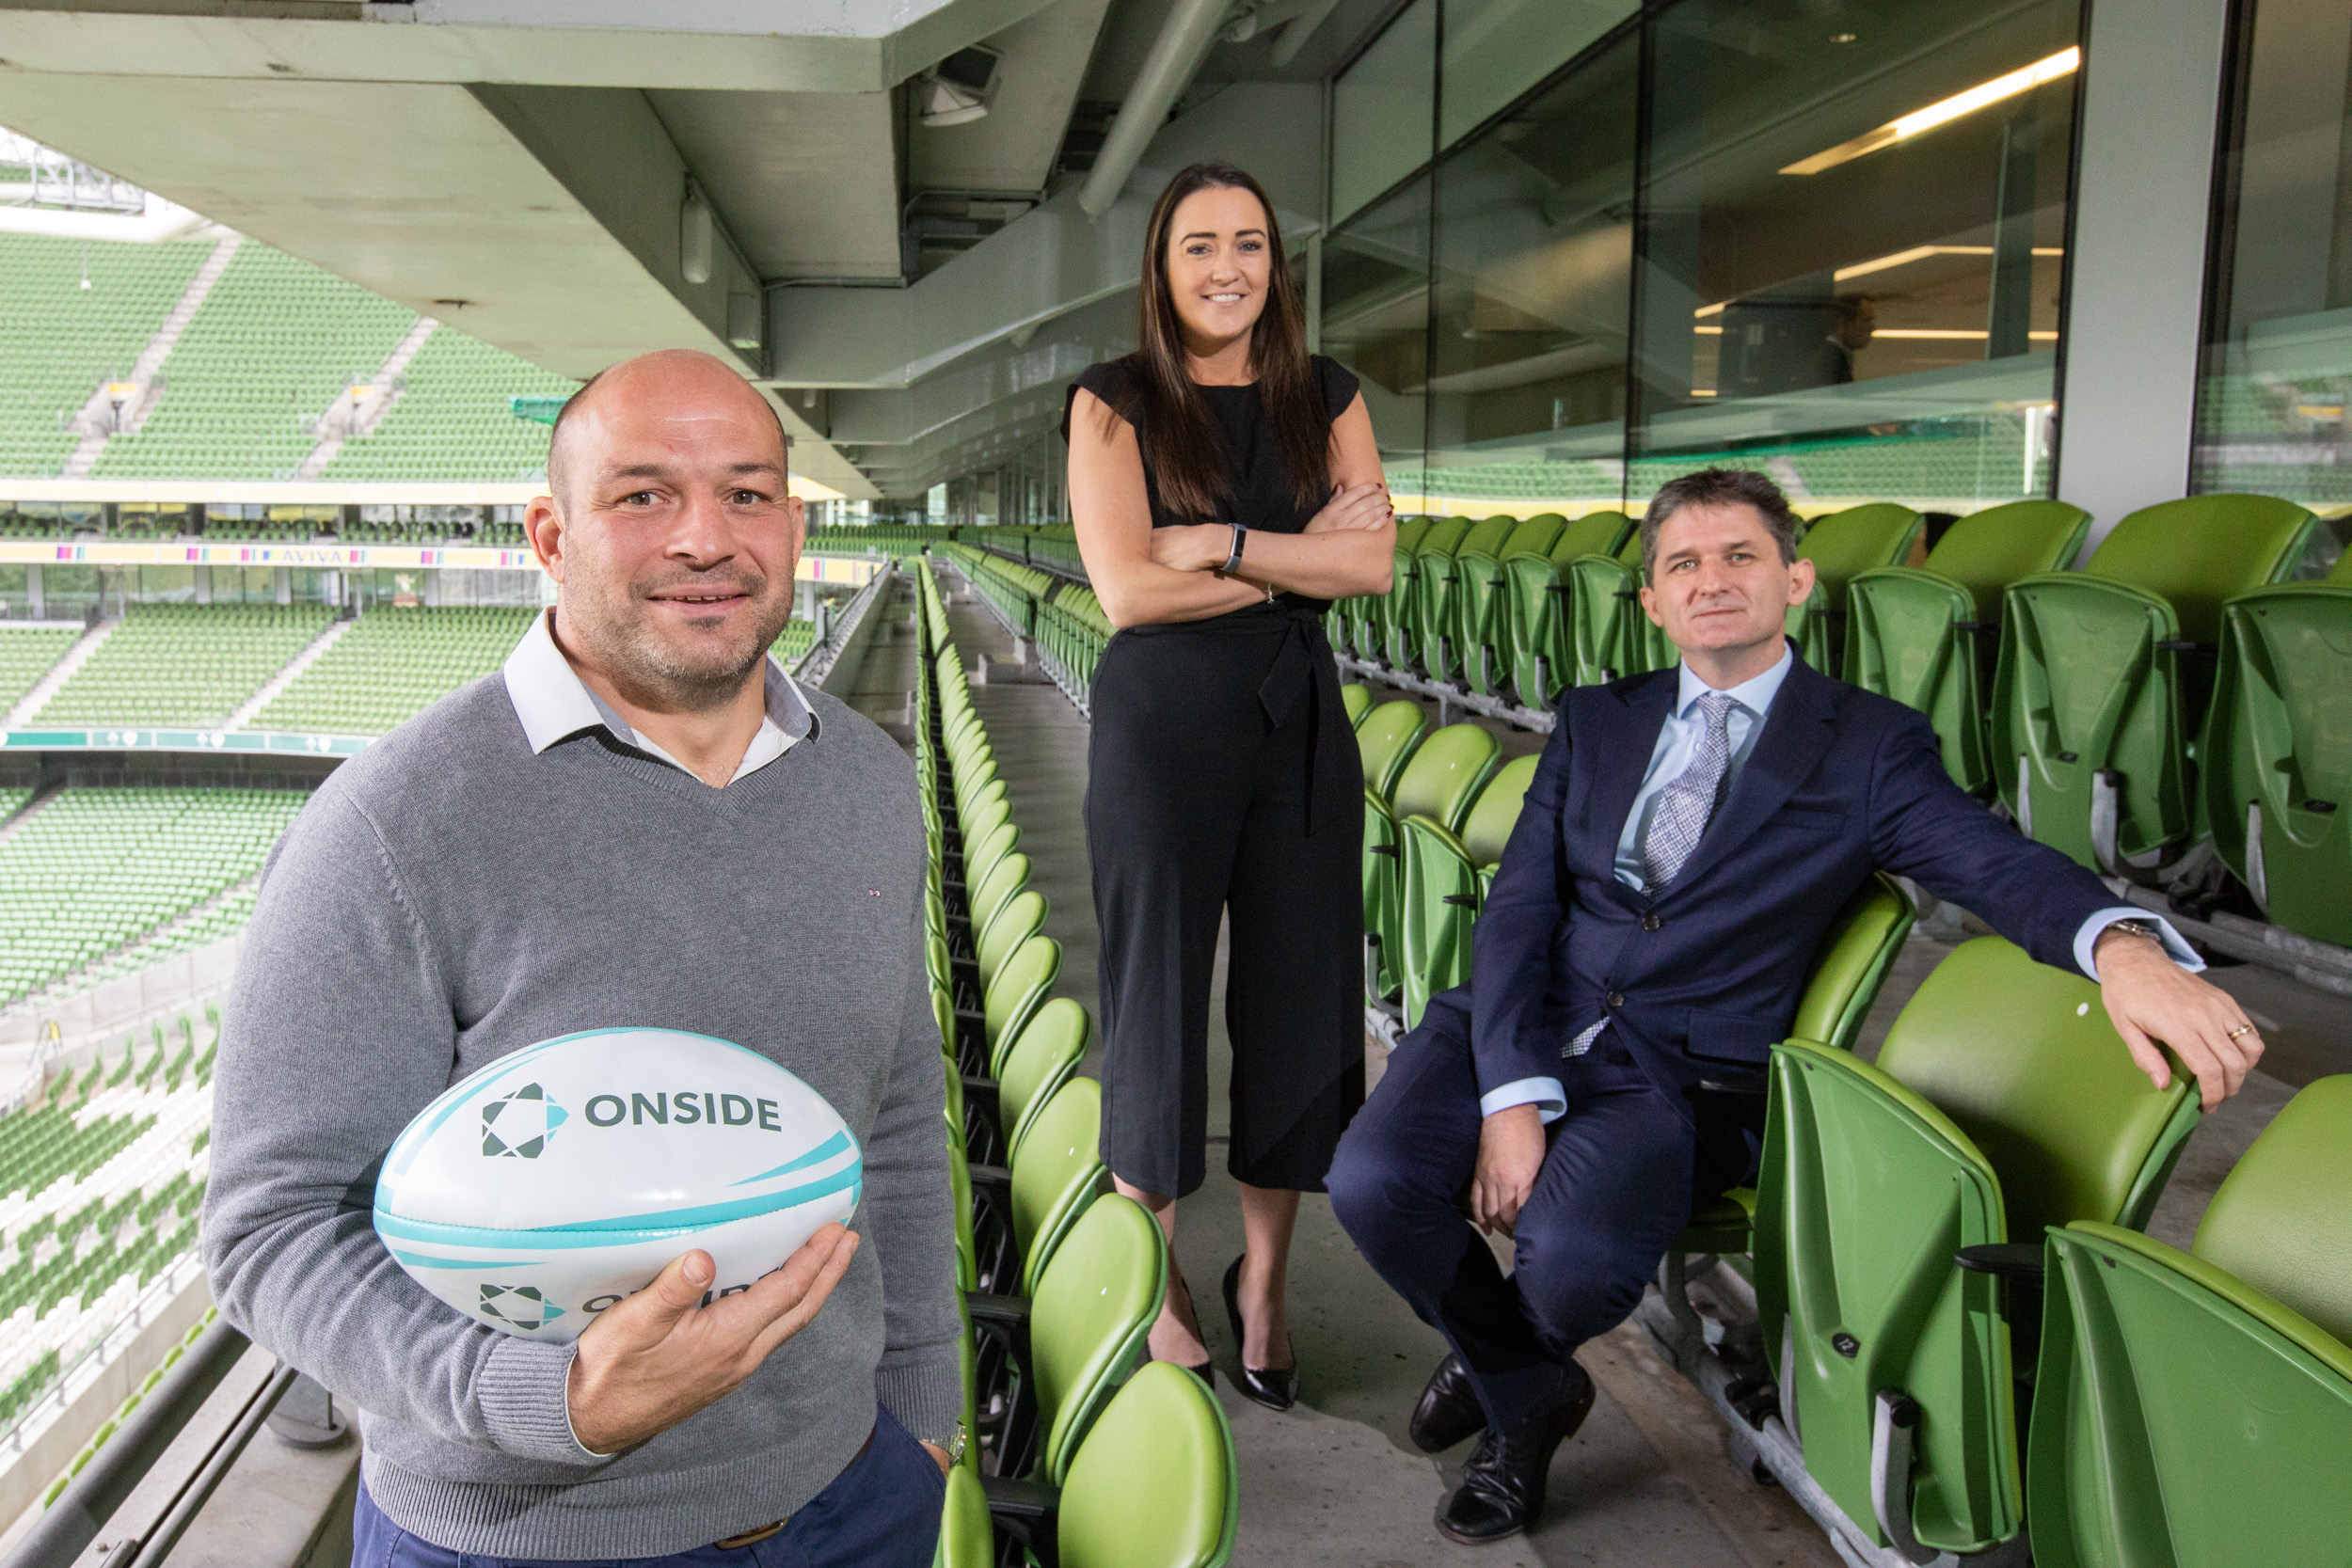 Irish Rugby Captain, Rory Best, Sponsorship Manager at Bank of Ireland, Gemma Bell and ONSIDE founder & CEO, John Trainor at 'Who Won the Summer of Sponsorship 2018?' at the Aviva Stadium